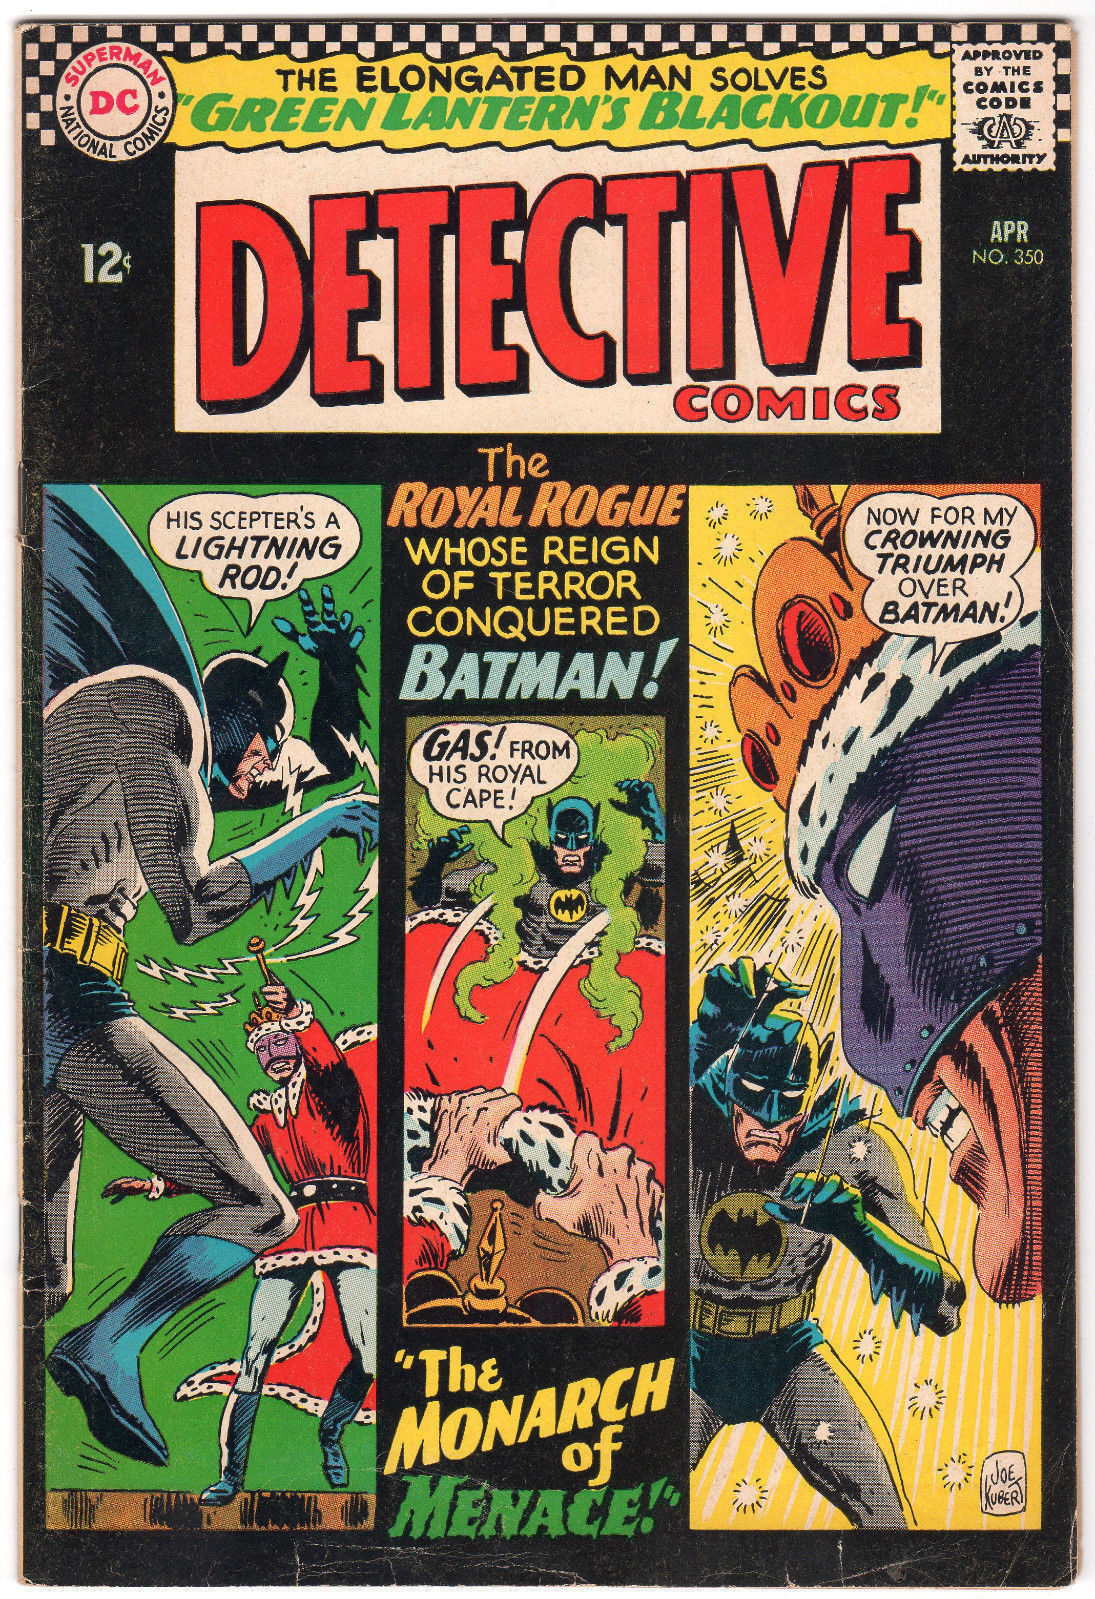 Detective Comics #350 (Apr 1966, DC) Comic Book